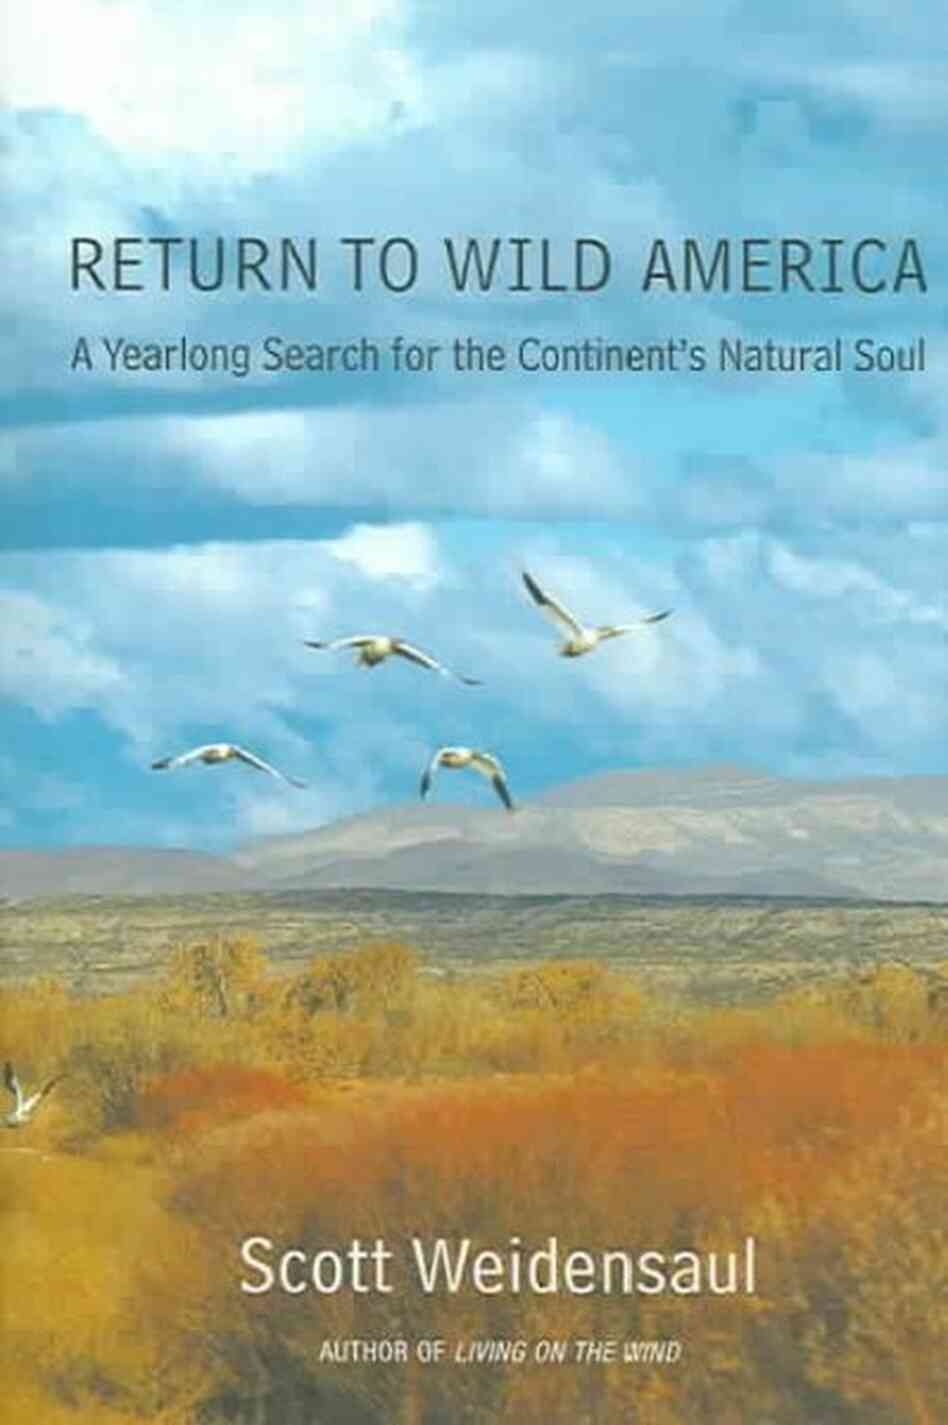 Return to Wild America